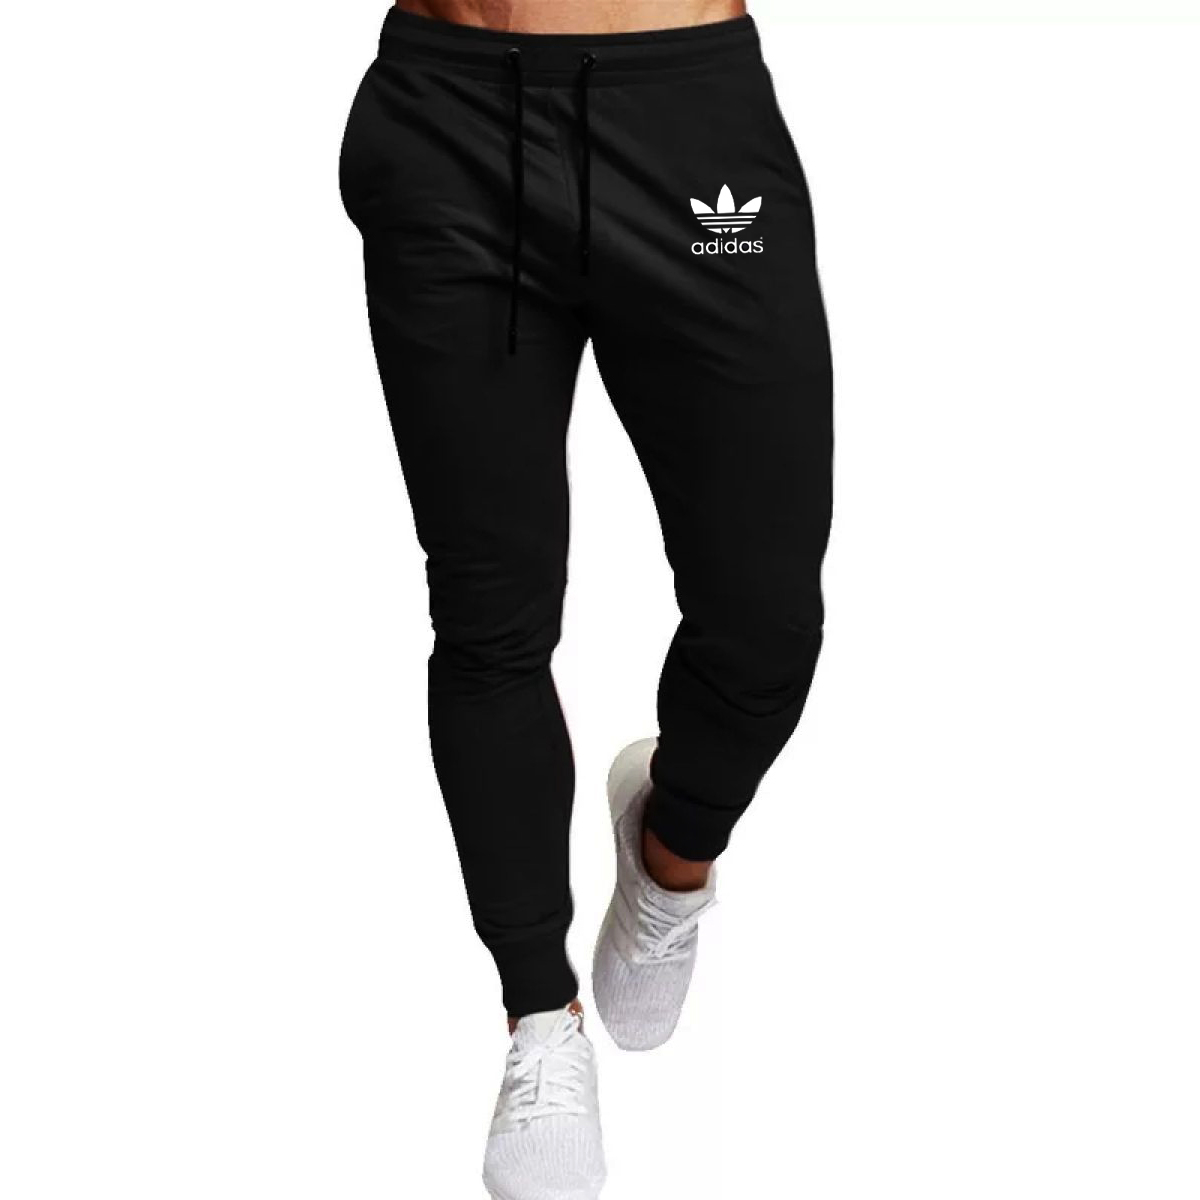 New Black French Terre Stuff Gym Sports Trousers and Jogging Sweatpant Export Quality Trouser For Men - IJ Traders